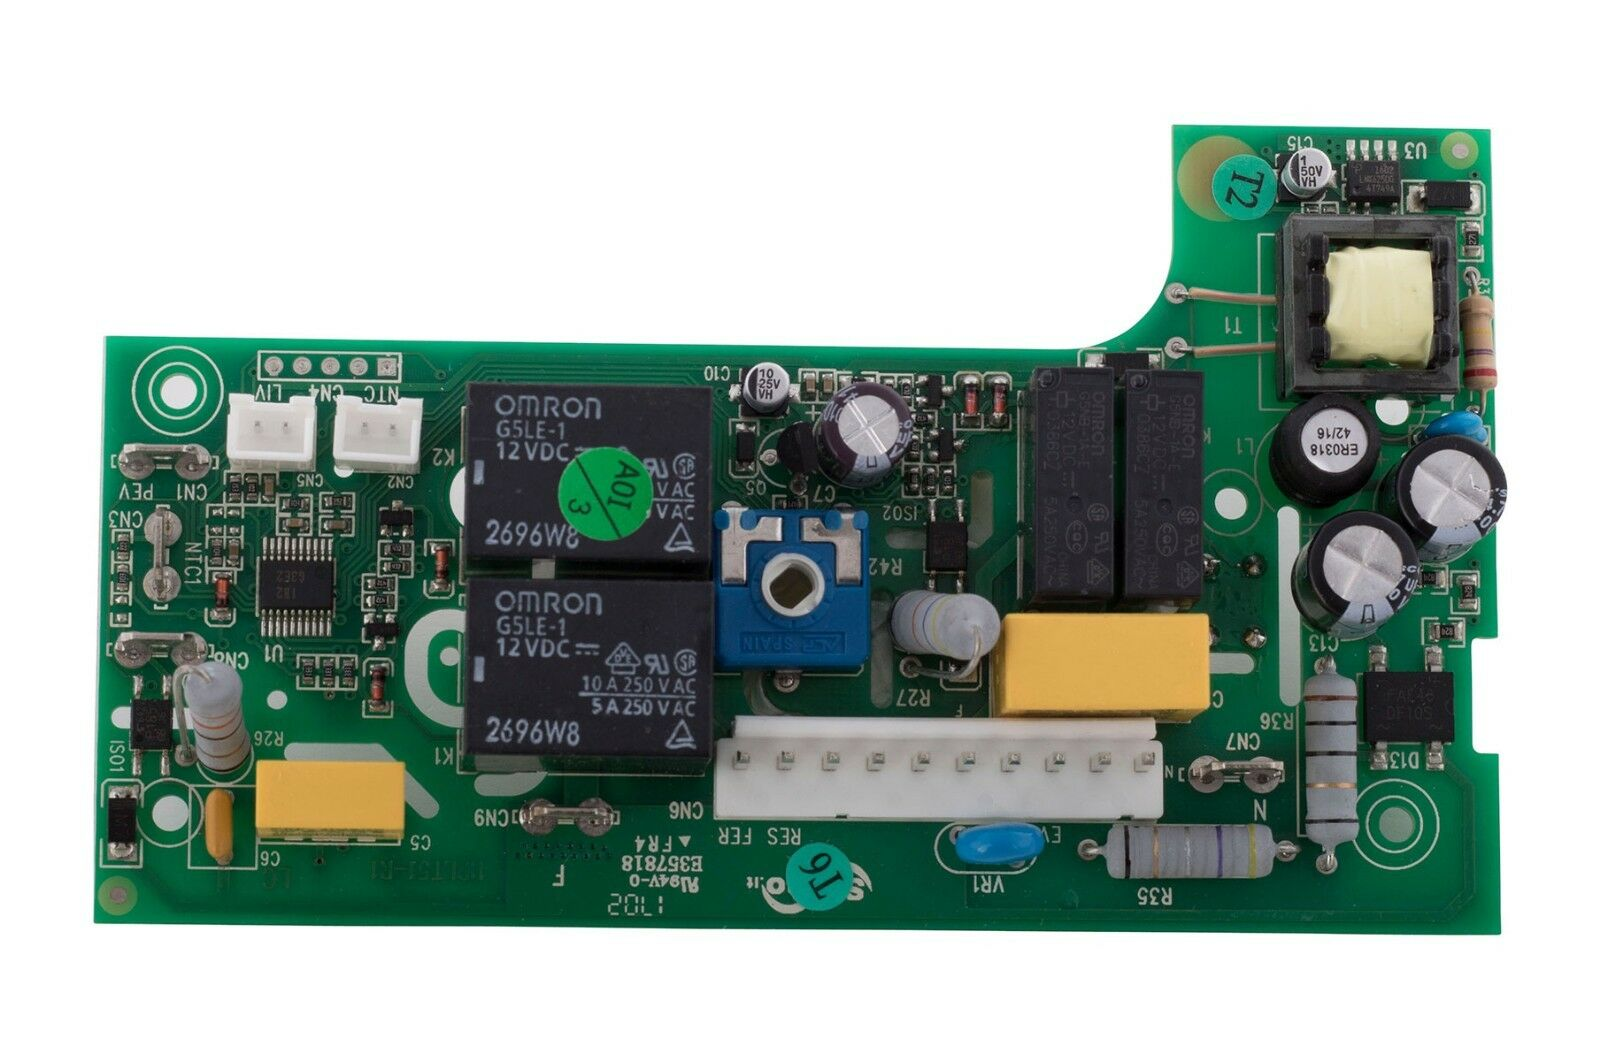 Polti Carte électronique PCB Fer Vaporella Silence Eco Friendly 19.55 PLEU0218